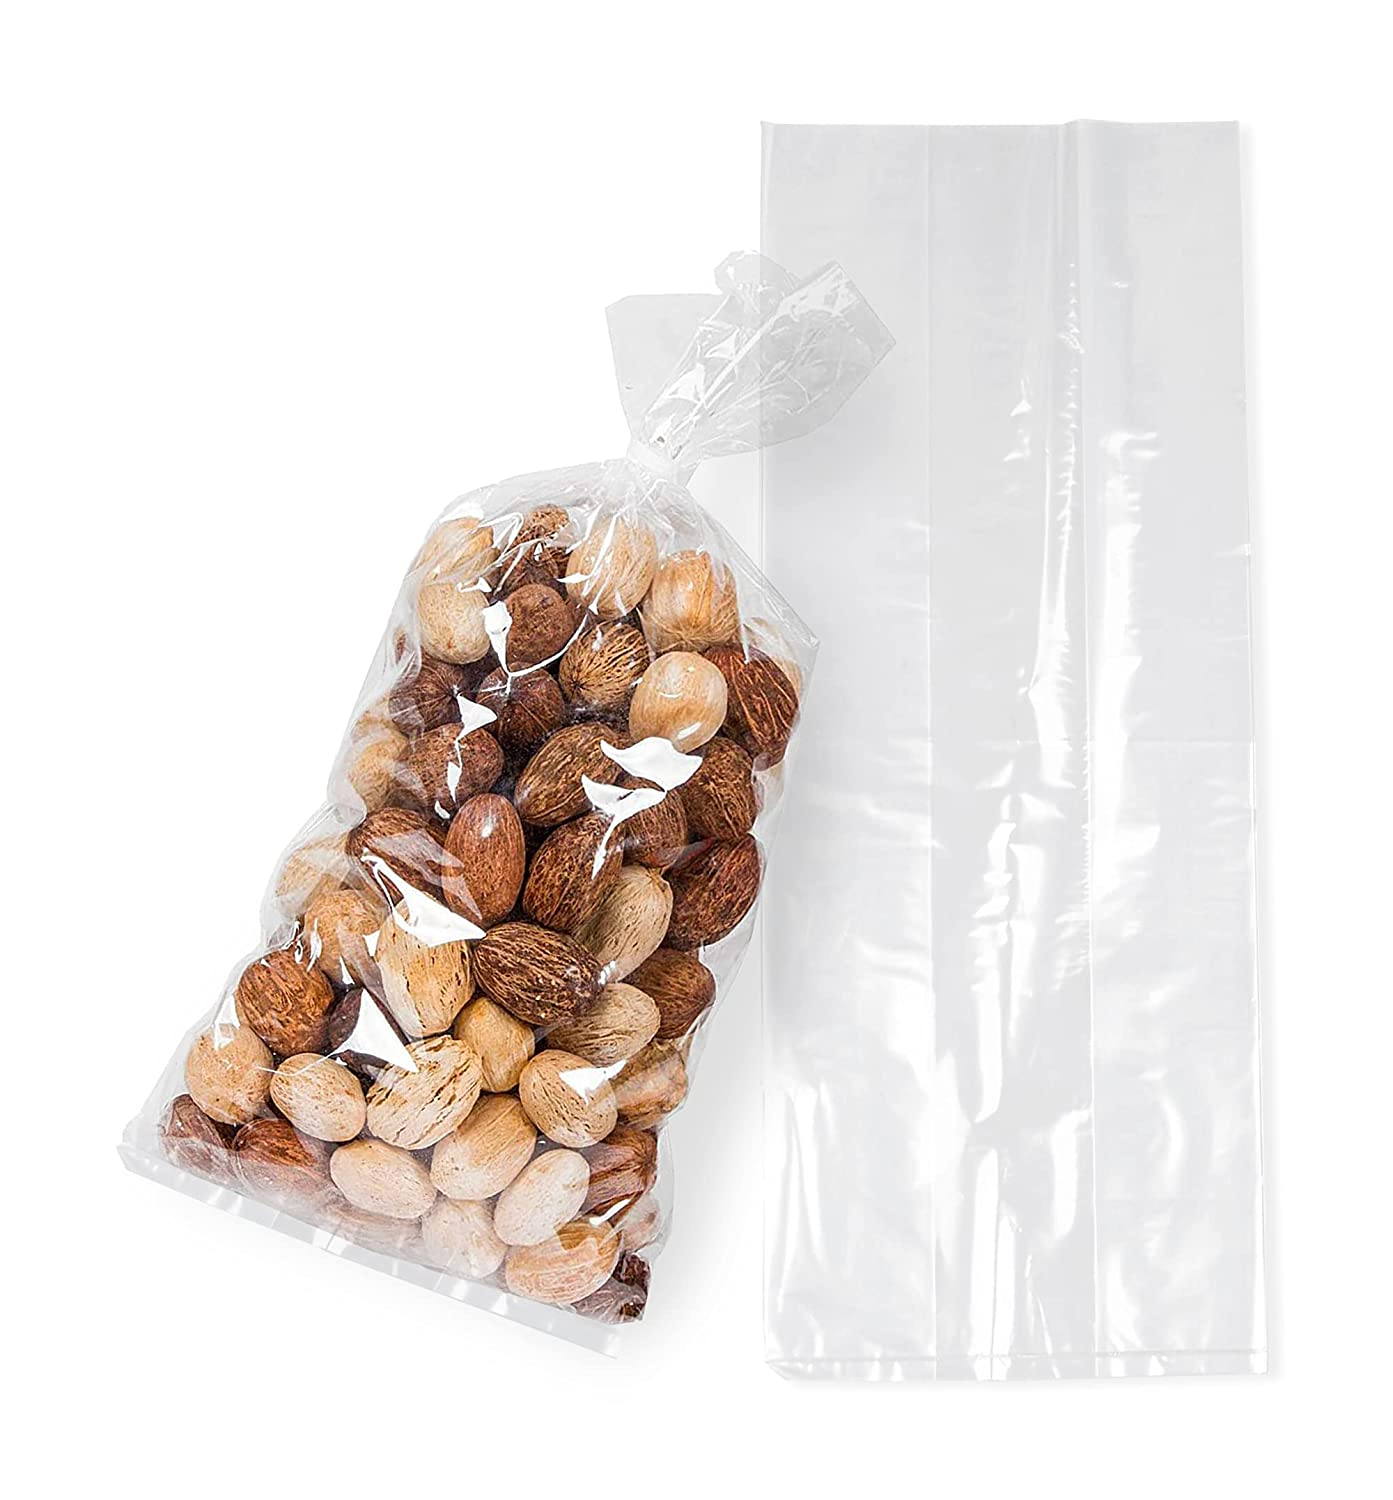 APQ Pack of 50 Gusseted Poly Bags 4 x 2 x 10. Cloudy Polyethylene Bags 4x2x10. Thickness 2 Mil. Expandable Side Gusset Bags. Open Ended Bags for Industrial, Food Service, Health Needs.